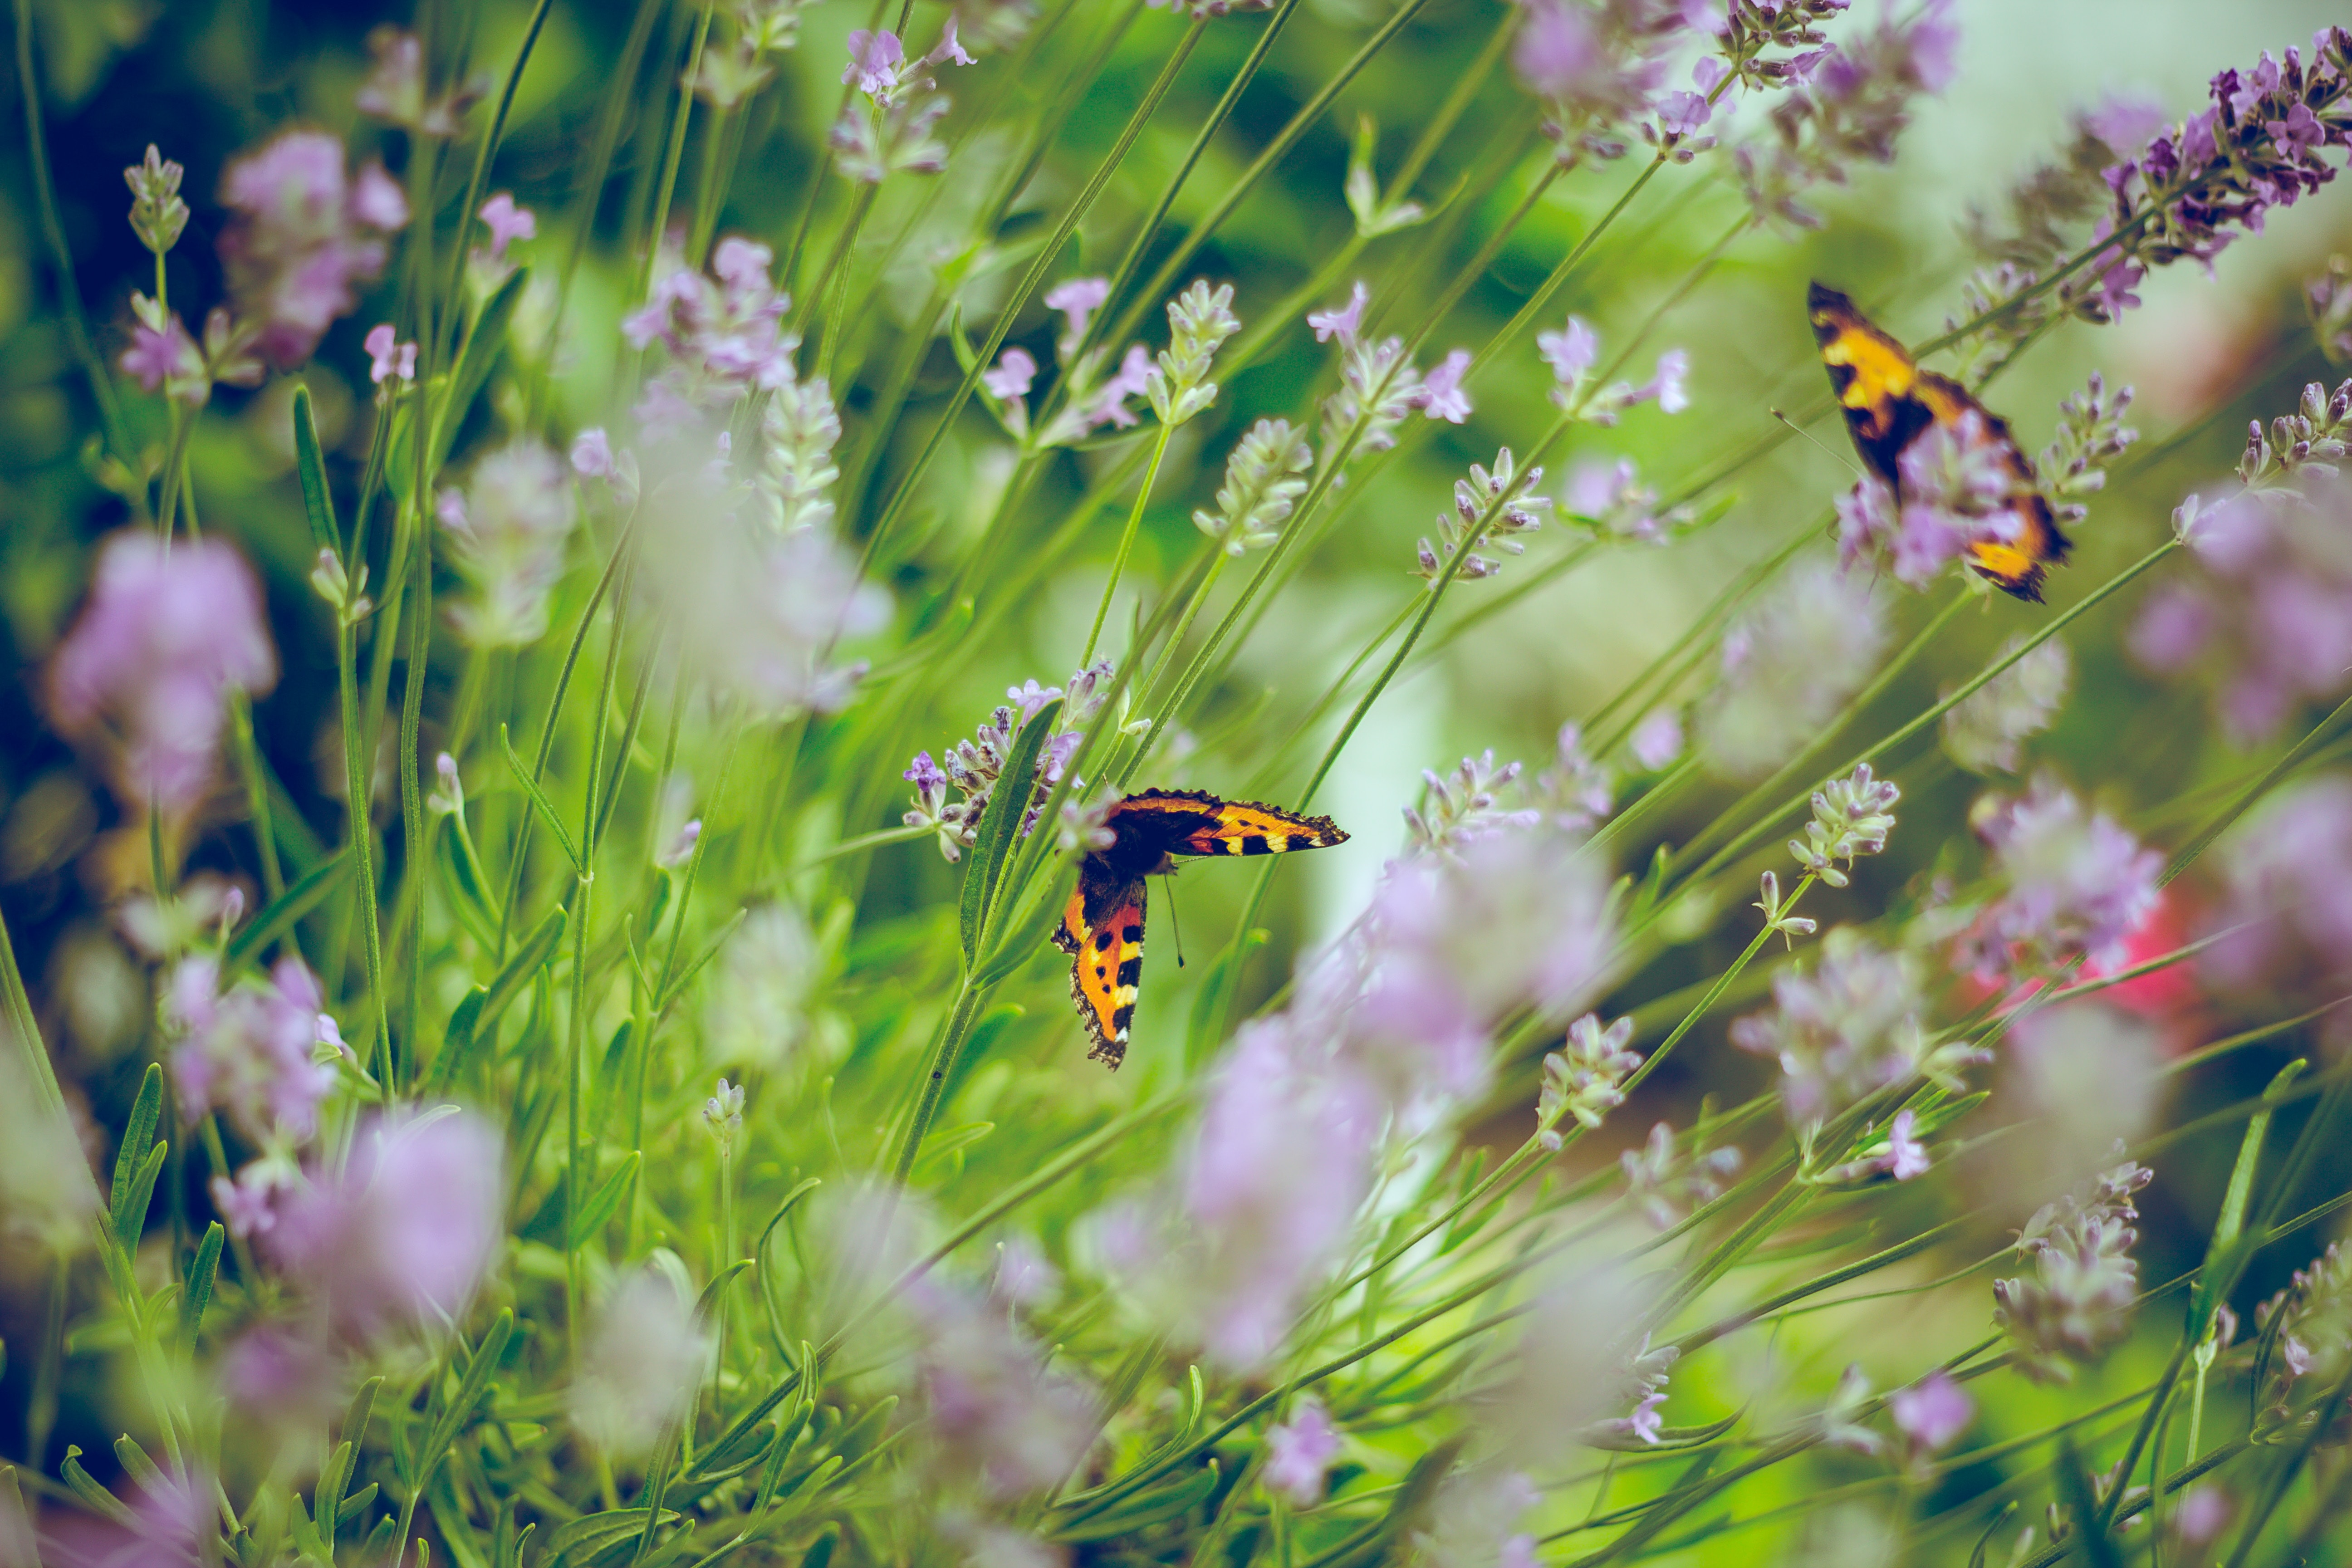 Lavender and Butterflies in the Garden